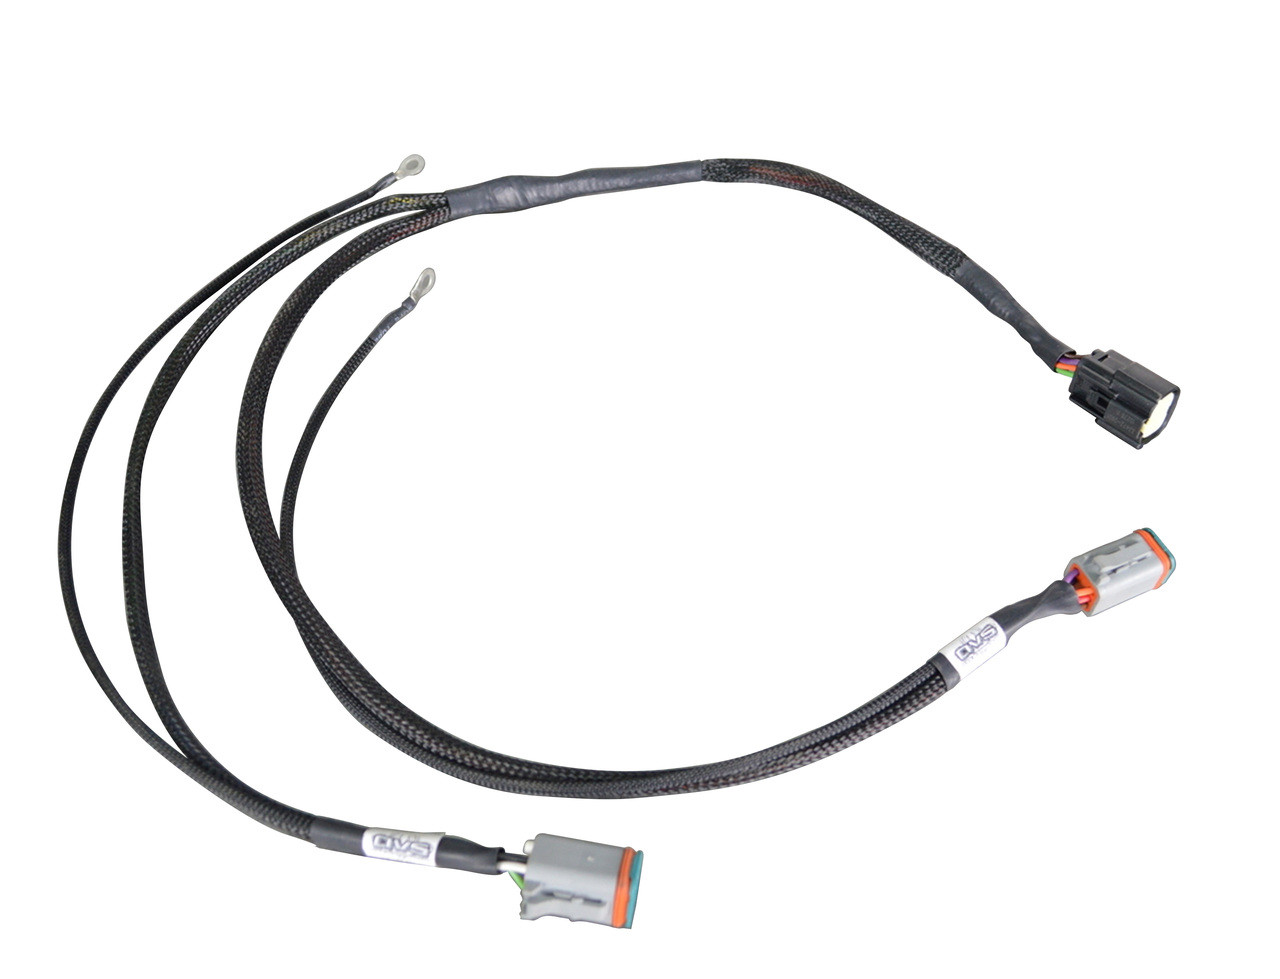 VALVE WIRING HARNESS FOR ACCUAIR ENDO-VT TANK TO E LEVEL